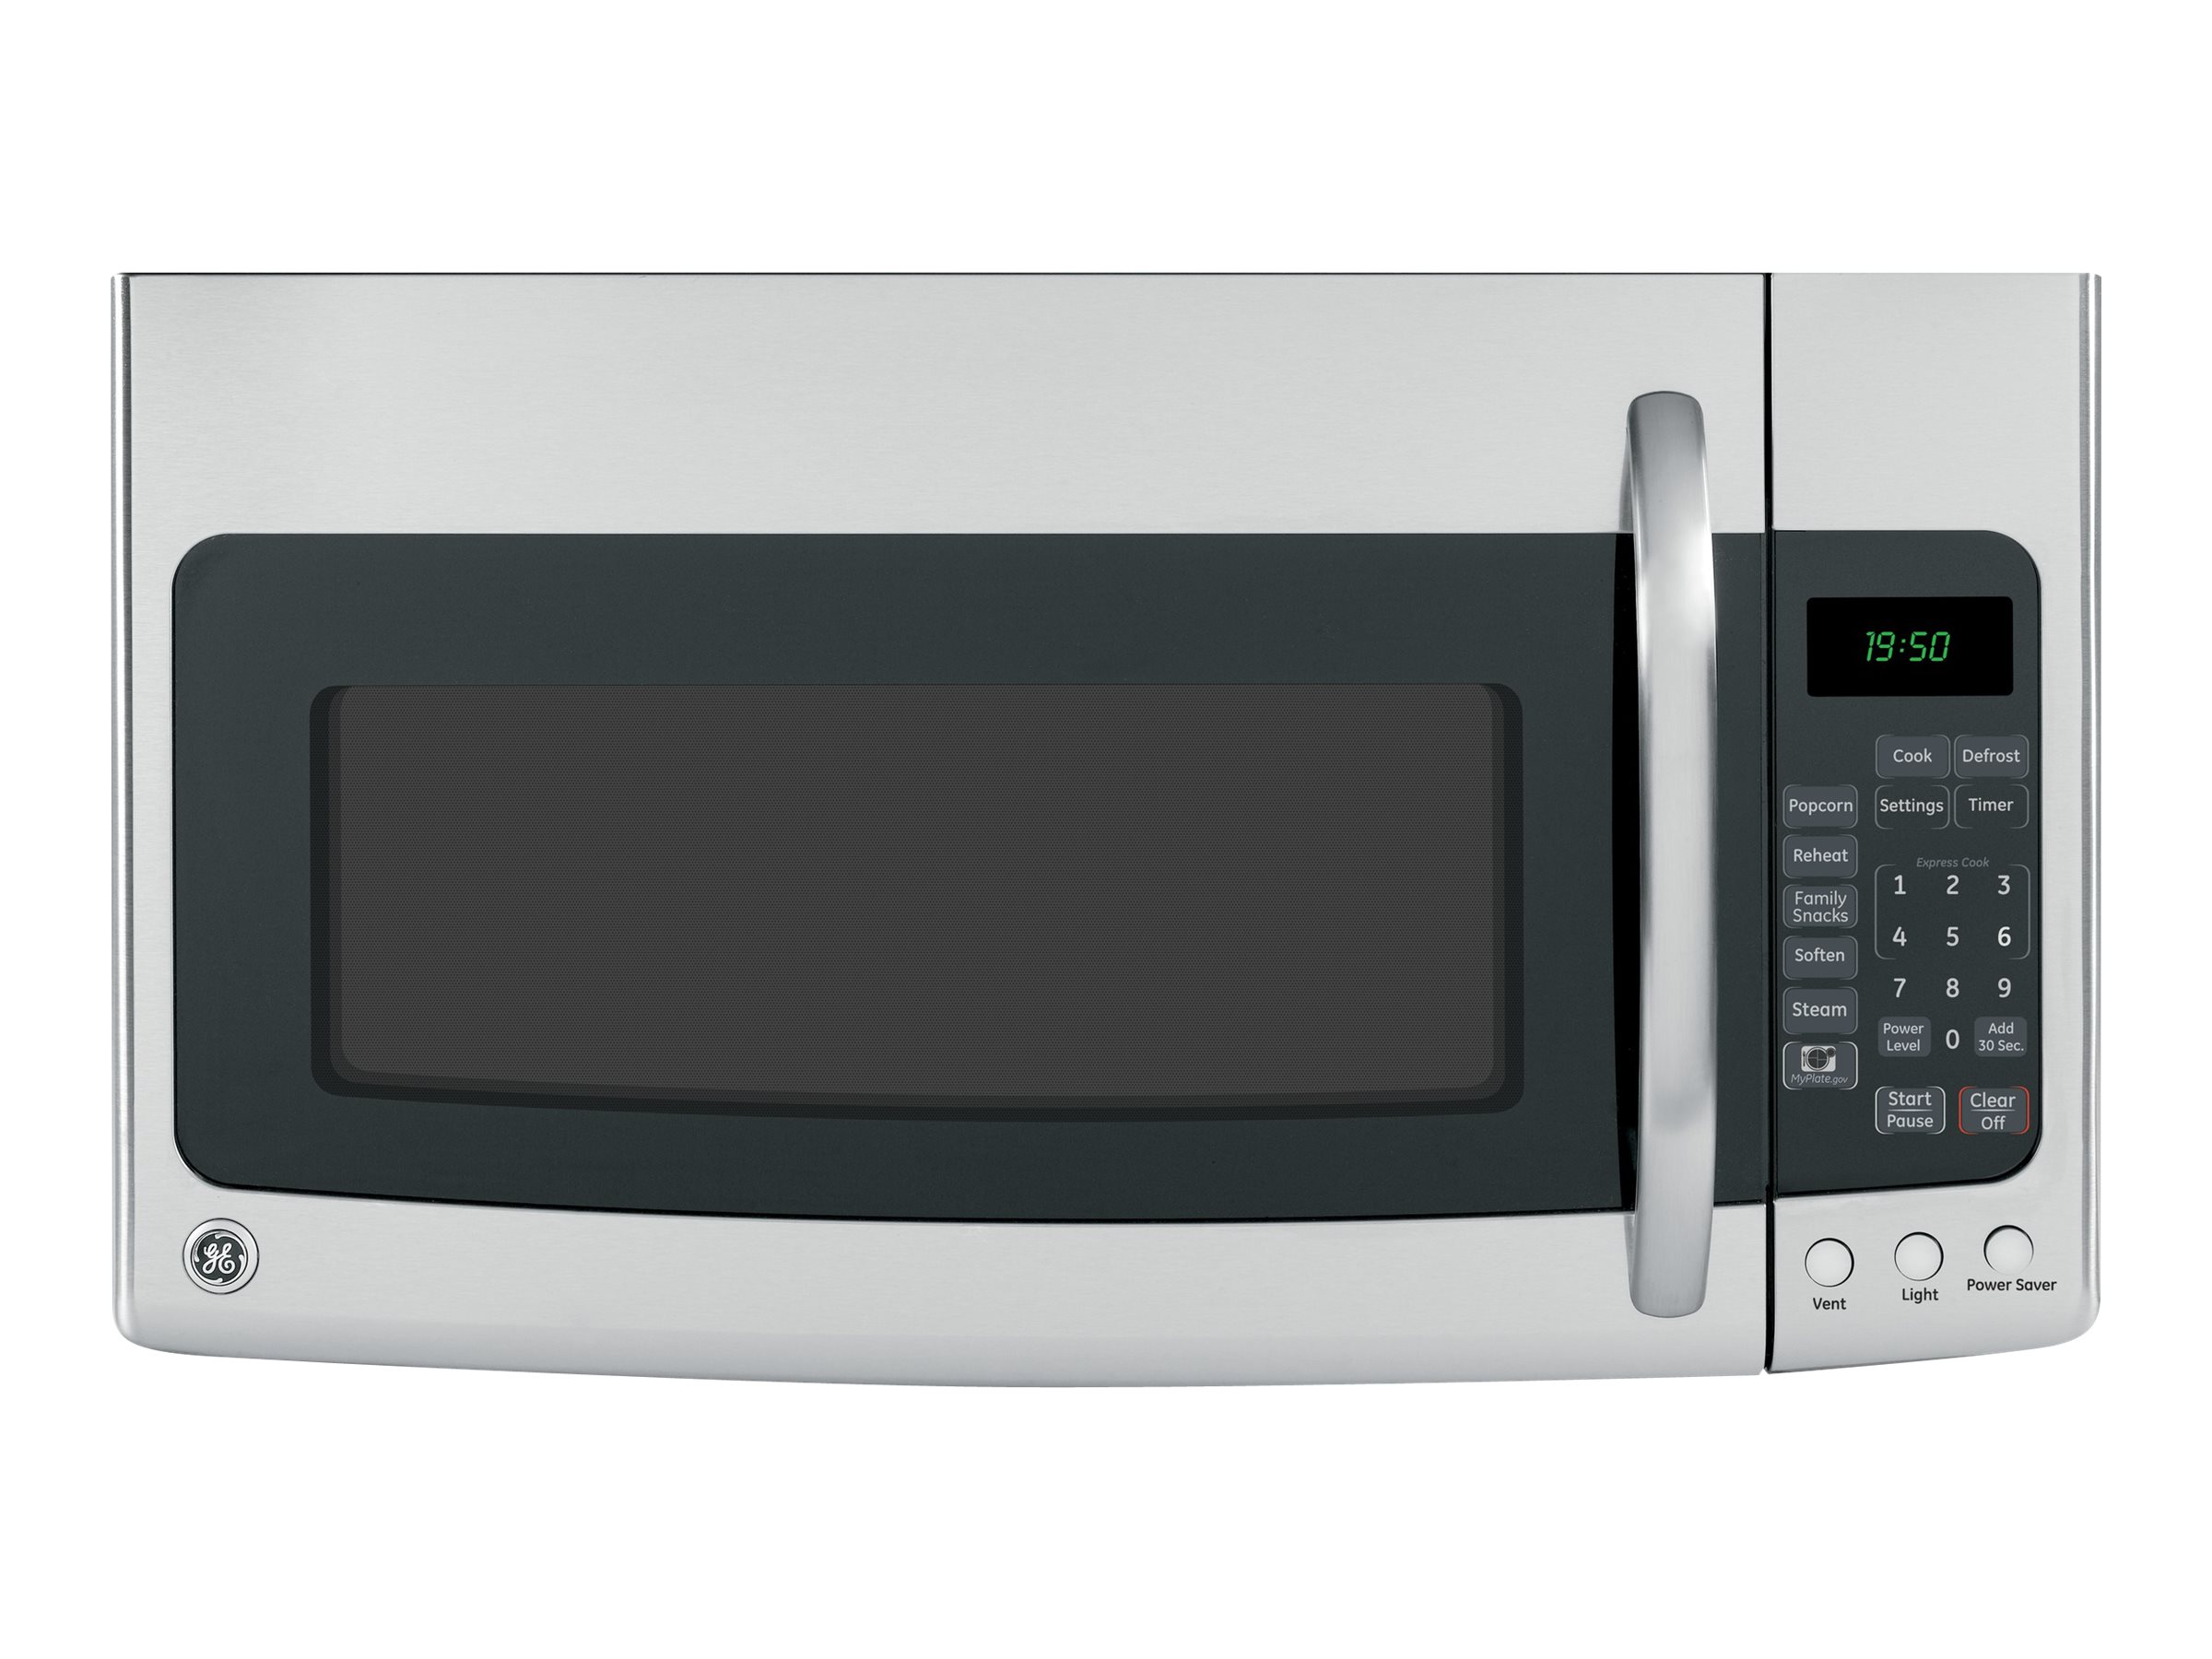 ge spacemaker jvm1950srss microwave oven over range 1 9 cu ft 1000 w stainless steel with built in exhaust system